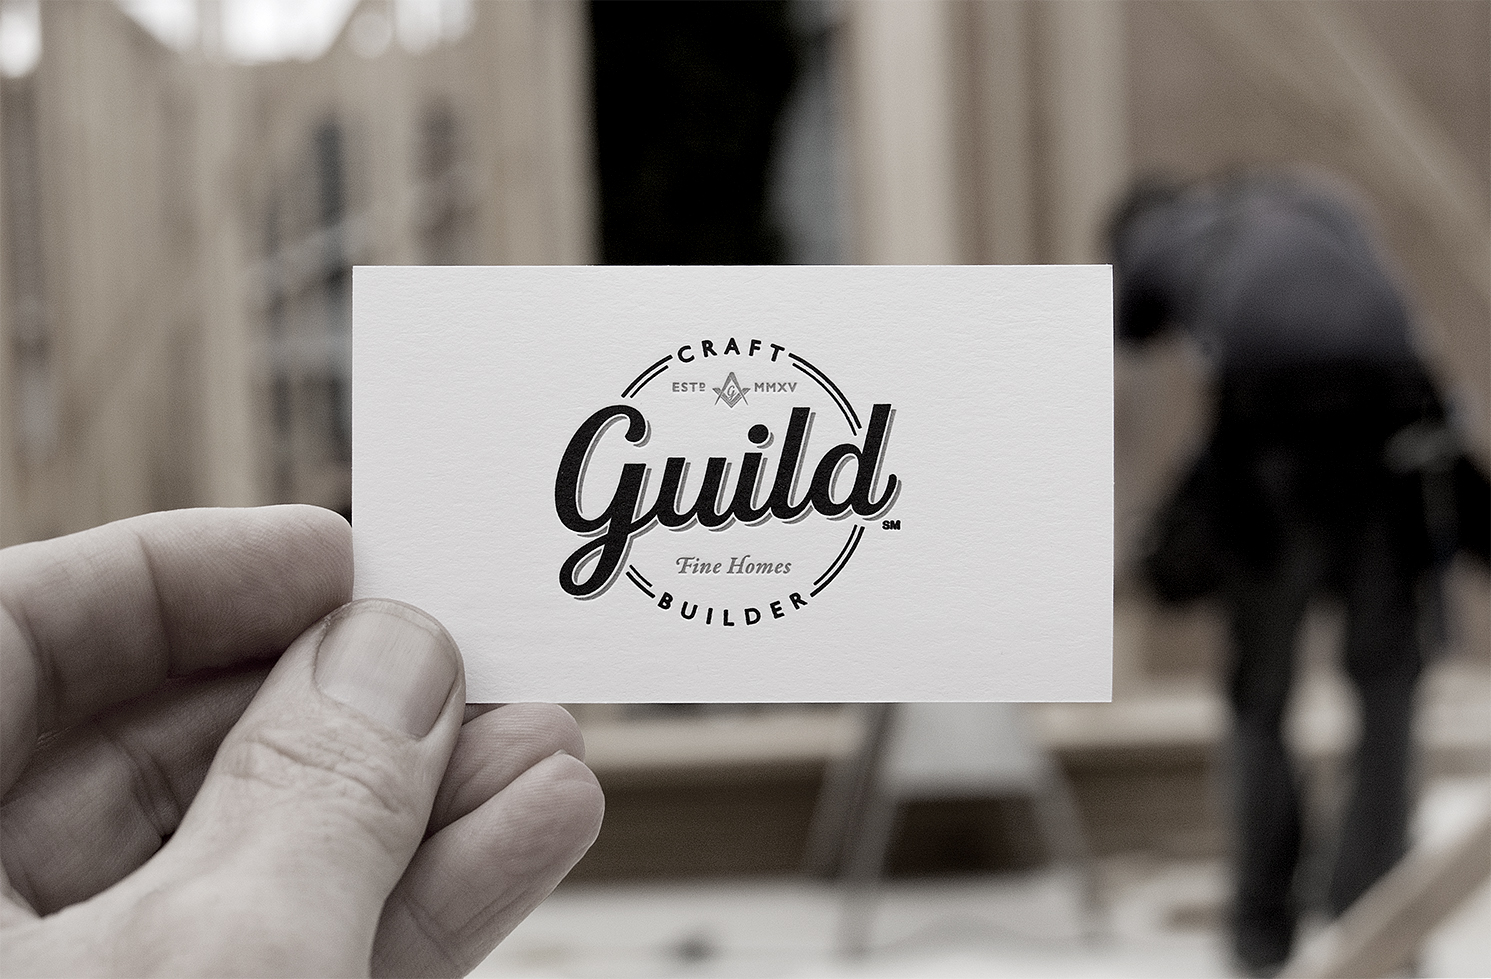 For our business cards, our new logo was printed using letterpress printing on heavy craft paper.